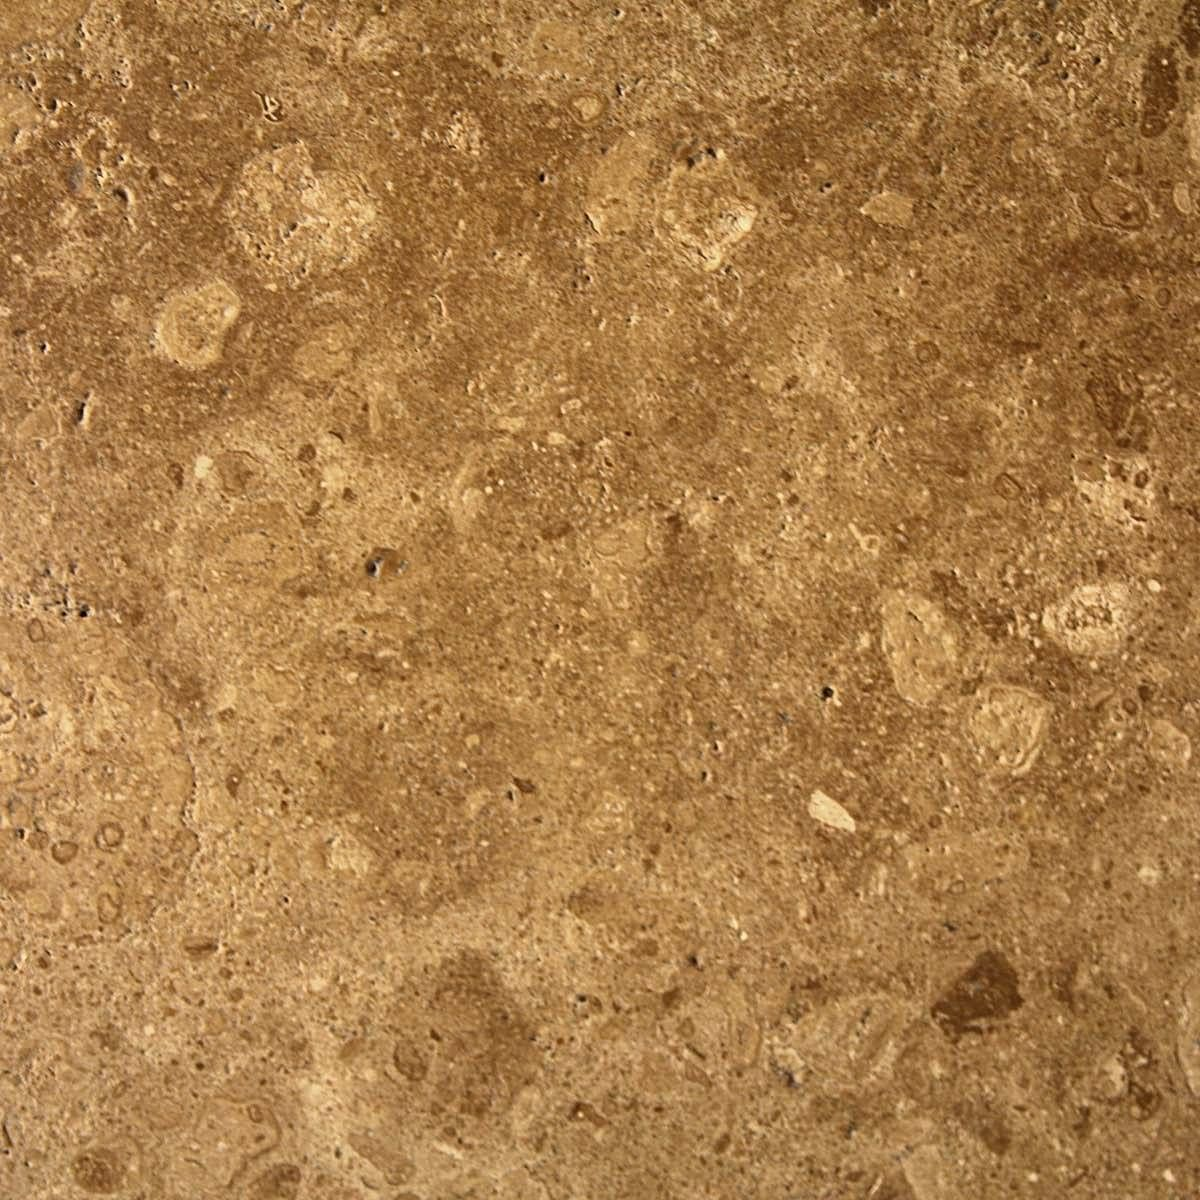 Light Brown Granite : Splotchy dark and light brown textured granite material